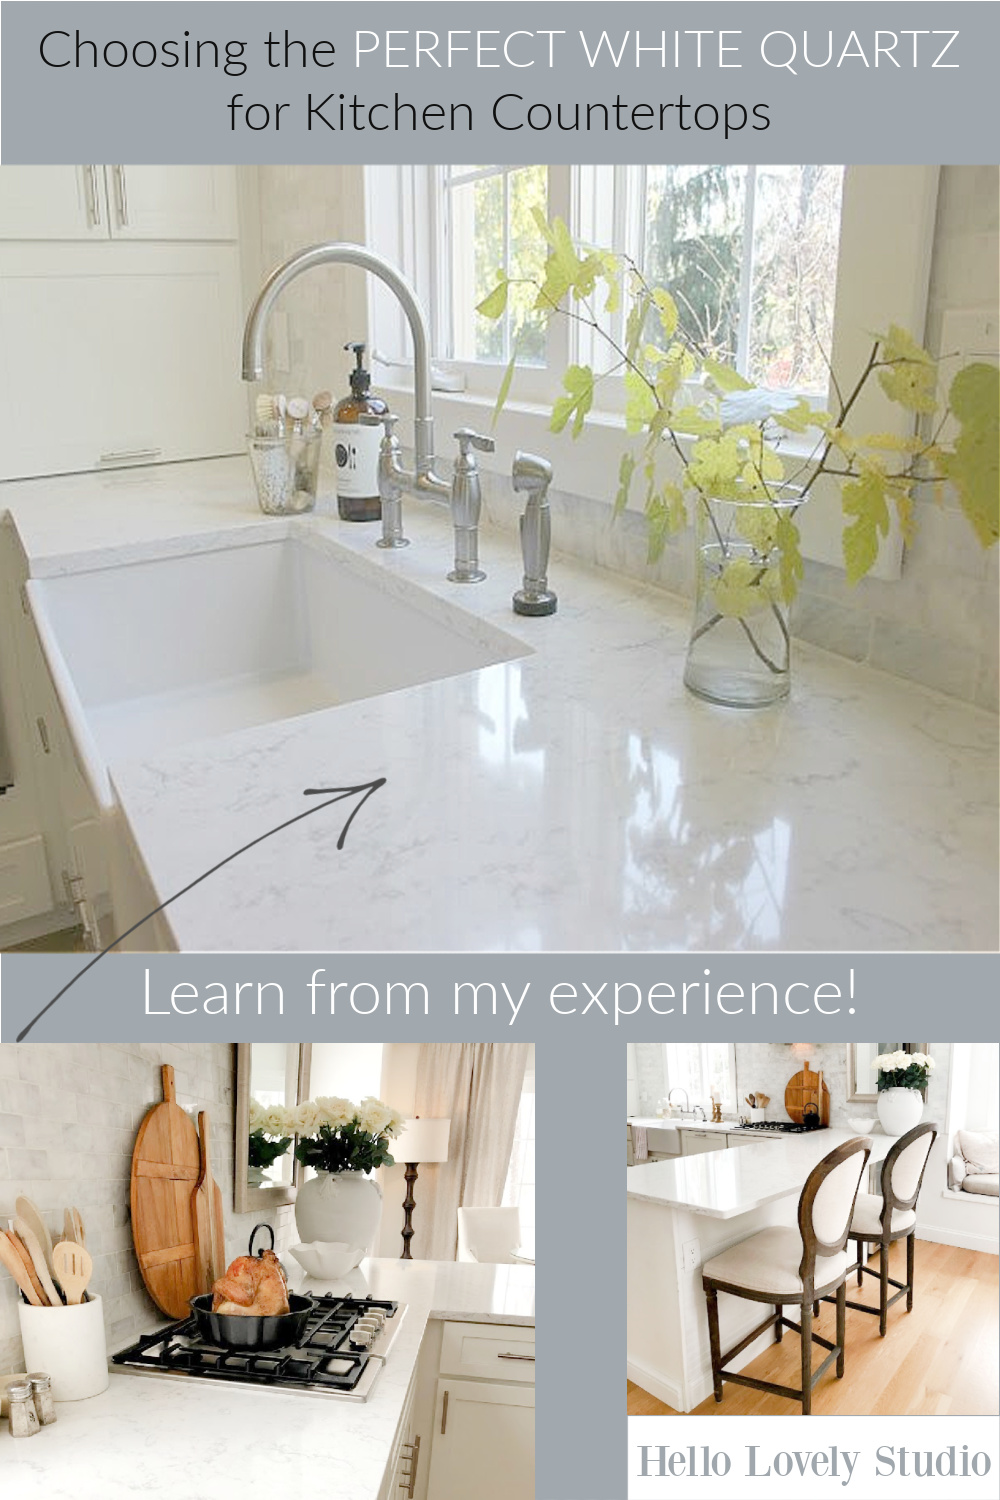 Choosing the perfect whit equartz for kitchen countertops - come find all the help you need on Hello Lovely Studio. #quartz #quartzcountertops #kitchendesign #whitequartz